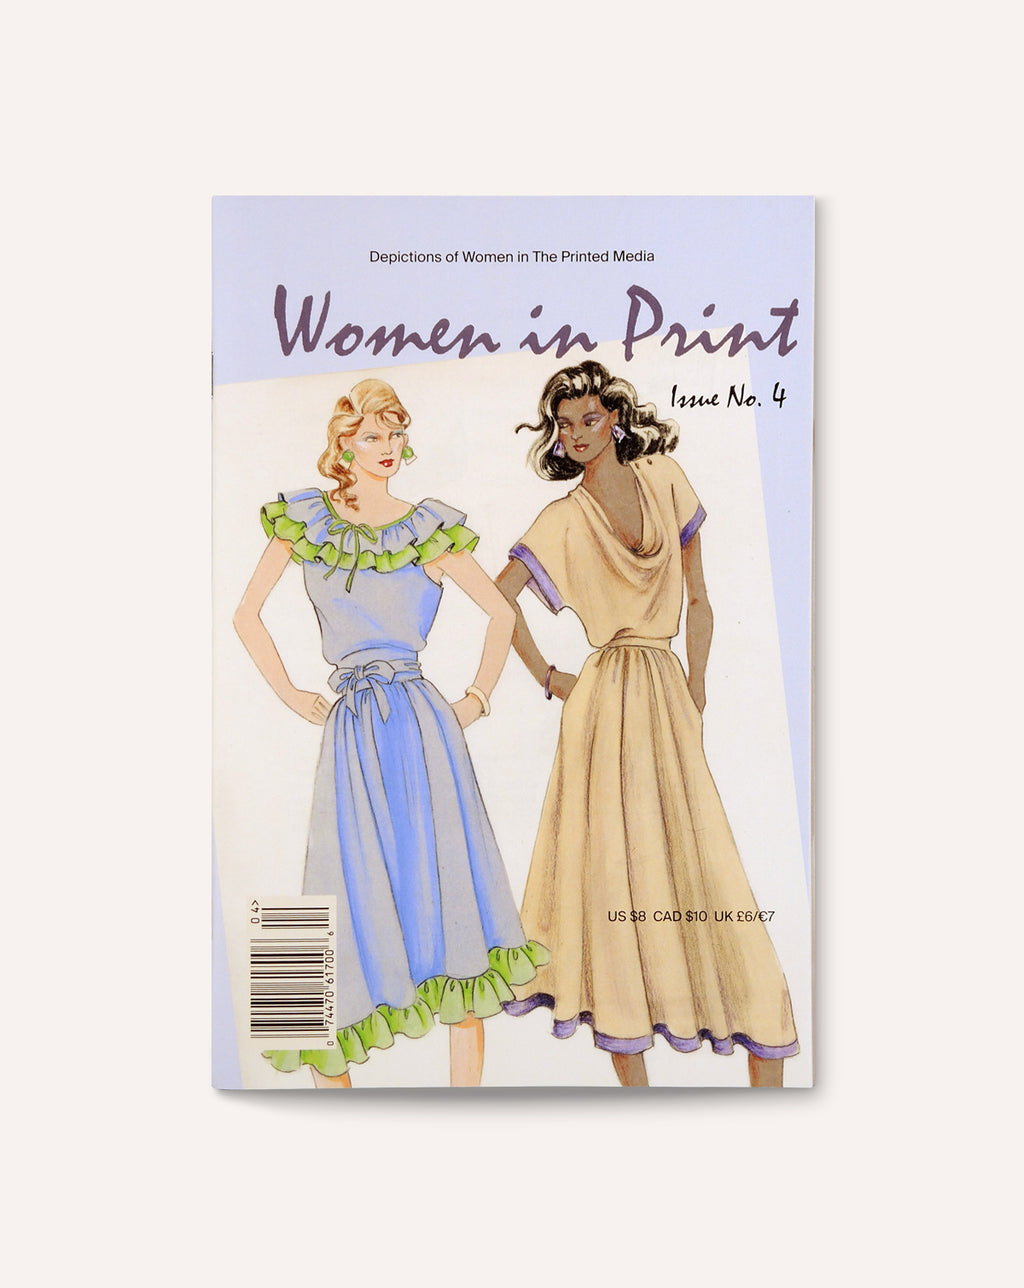 Women in Print (Issue No. 4)